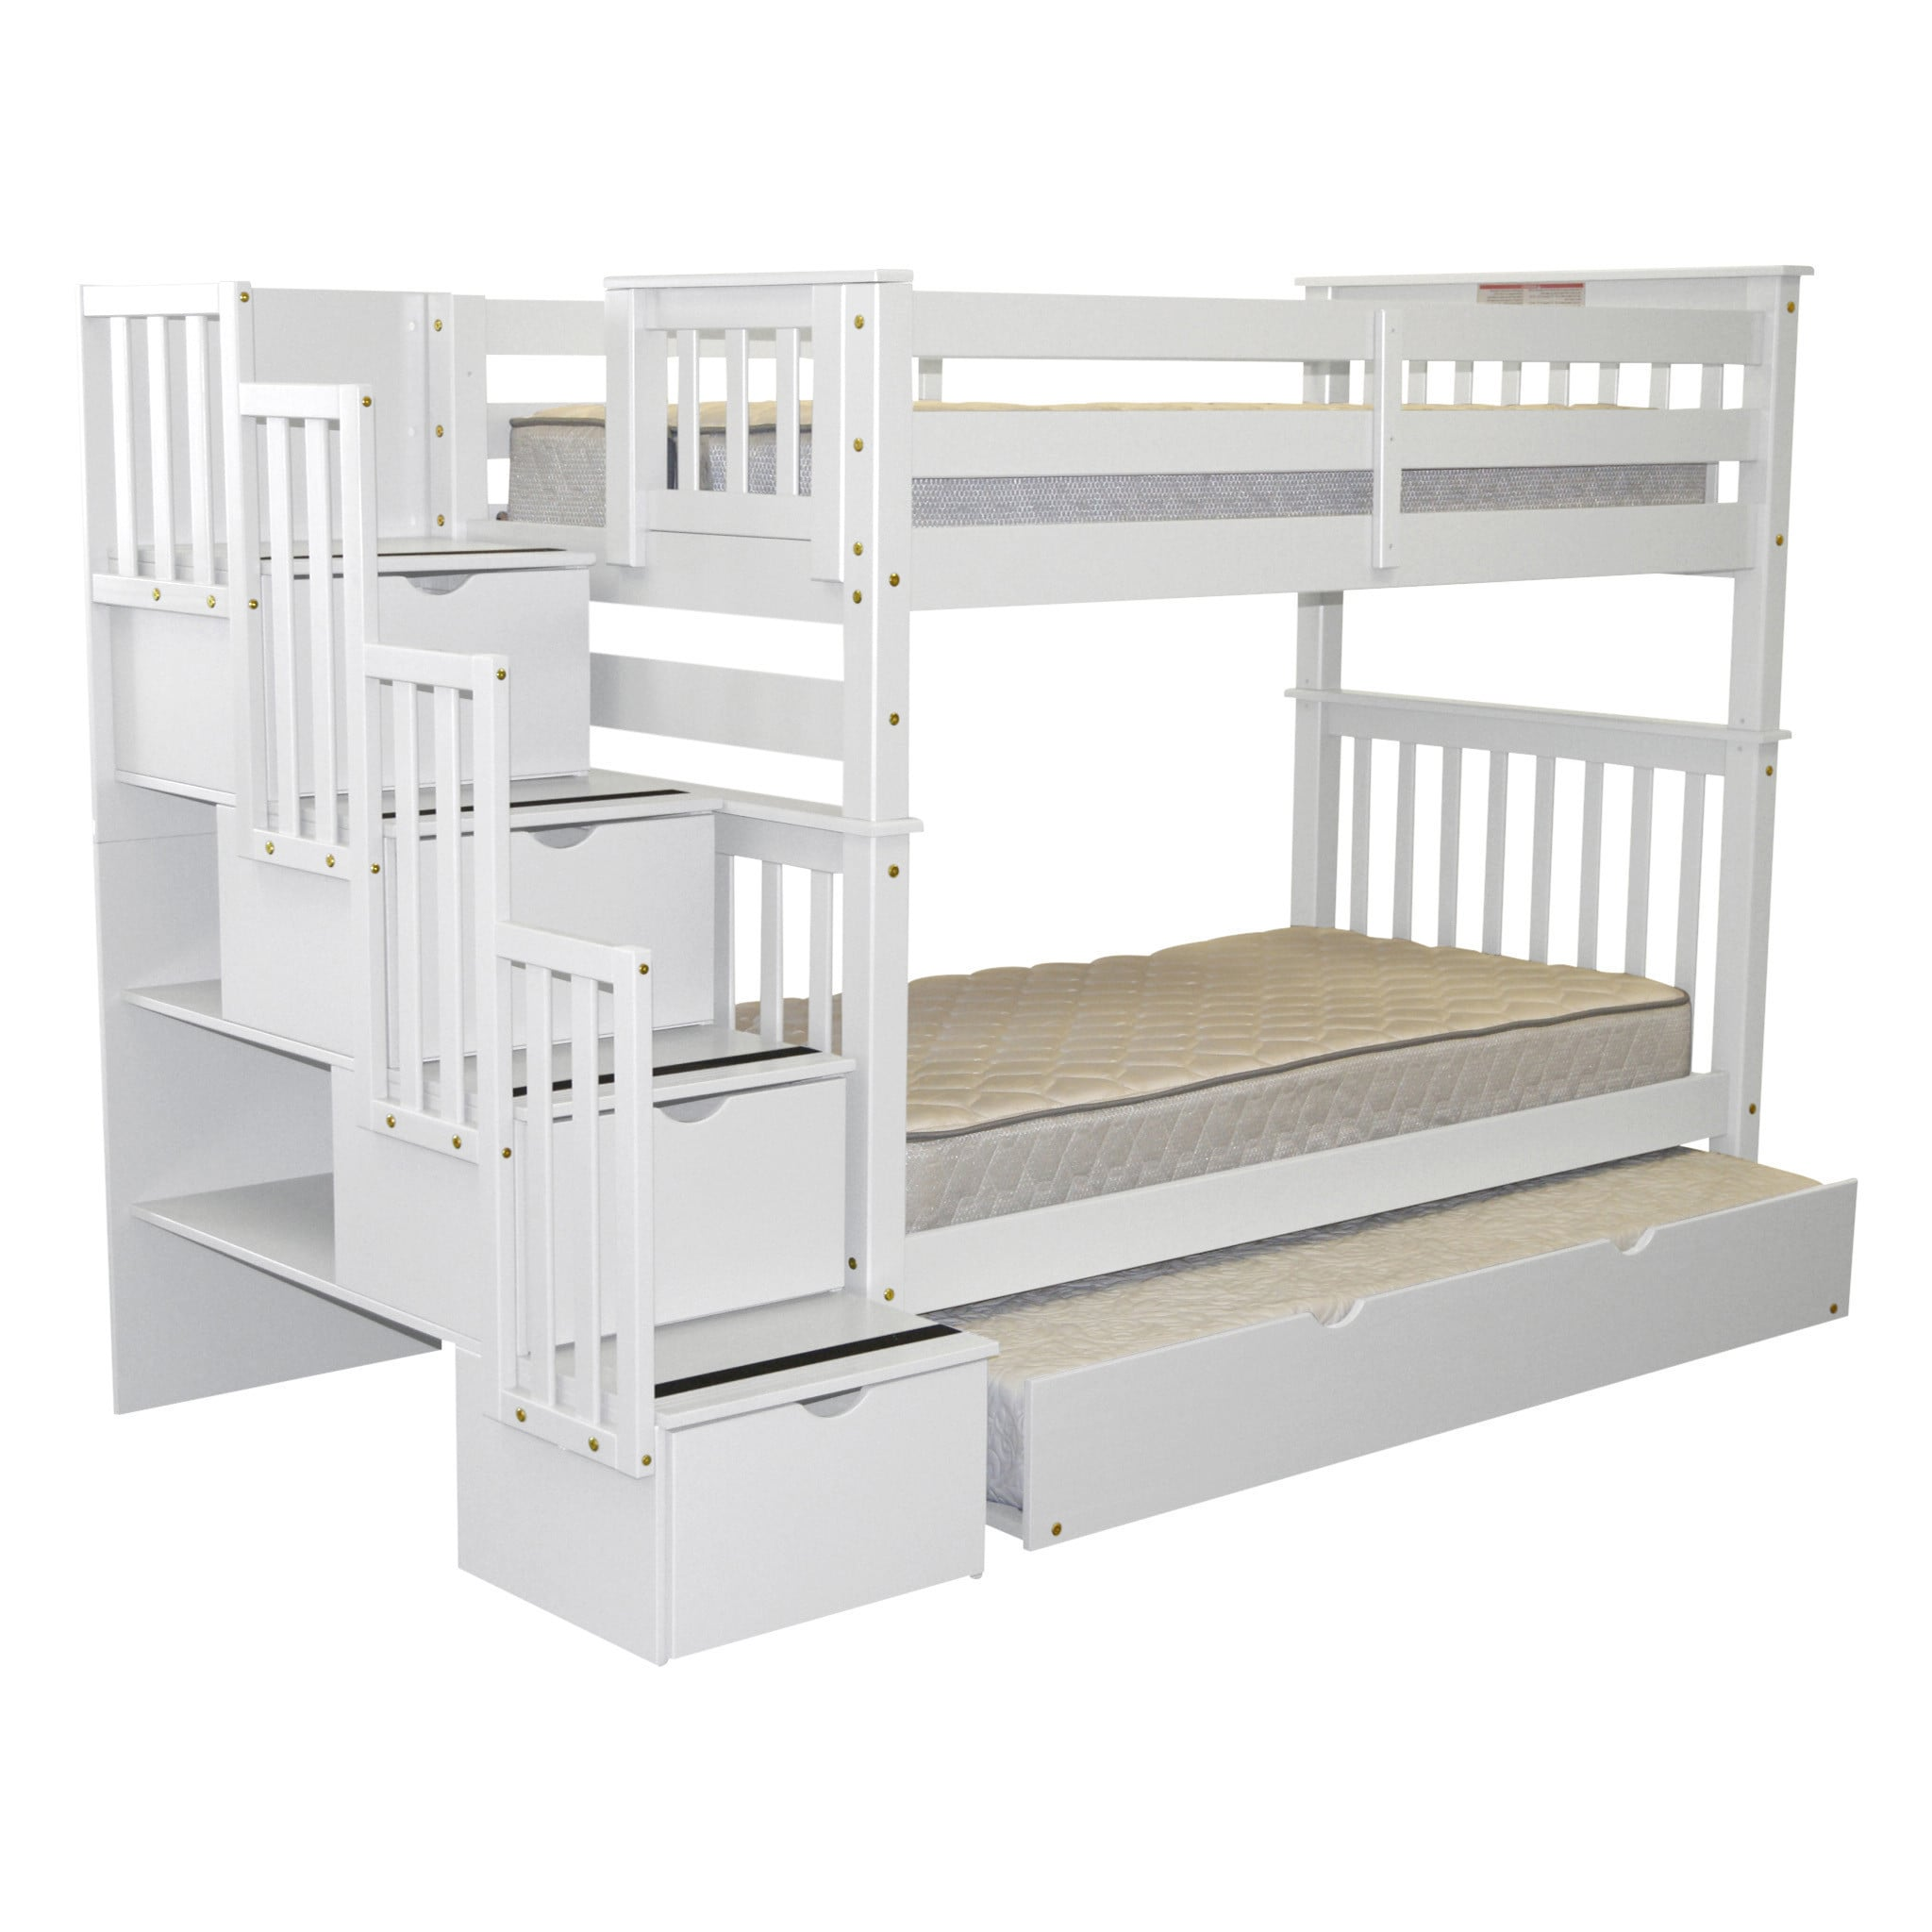 Bedz King Tall Stairway Twin over Twin Bunk Bed with Drawers and a Twin Trundle by Bedz King